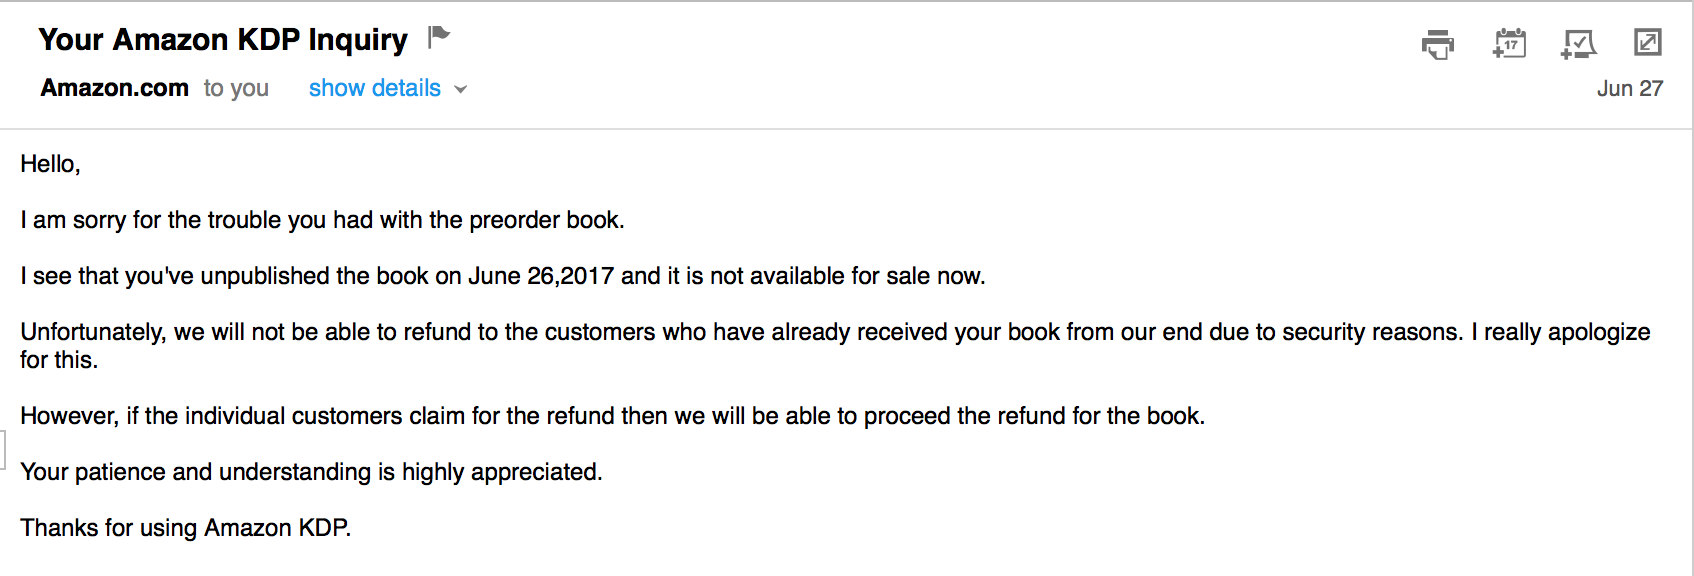 "Letter from KDP ""I am sorry for the trouble you had with the preorder book.  I see that you've unpublished the book on June 26,2017 and it is not available for sale now.  Unfortunately, we will not be able to refund to the customers who have already received your book from our end due to security reasons. I really apologize for this.  However, if the individual customers claim for the refund then we will be able to proceed the refund for the book.  Your patience and understanding is highly appreciated.  Thanks for using Amazon KDP."""